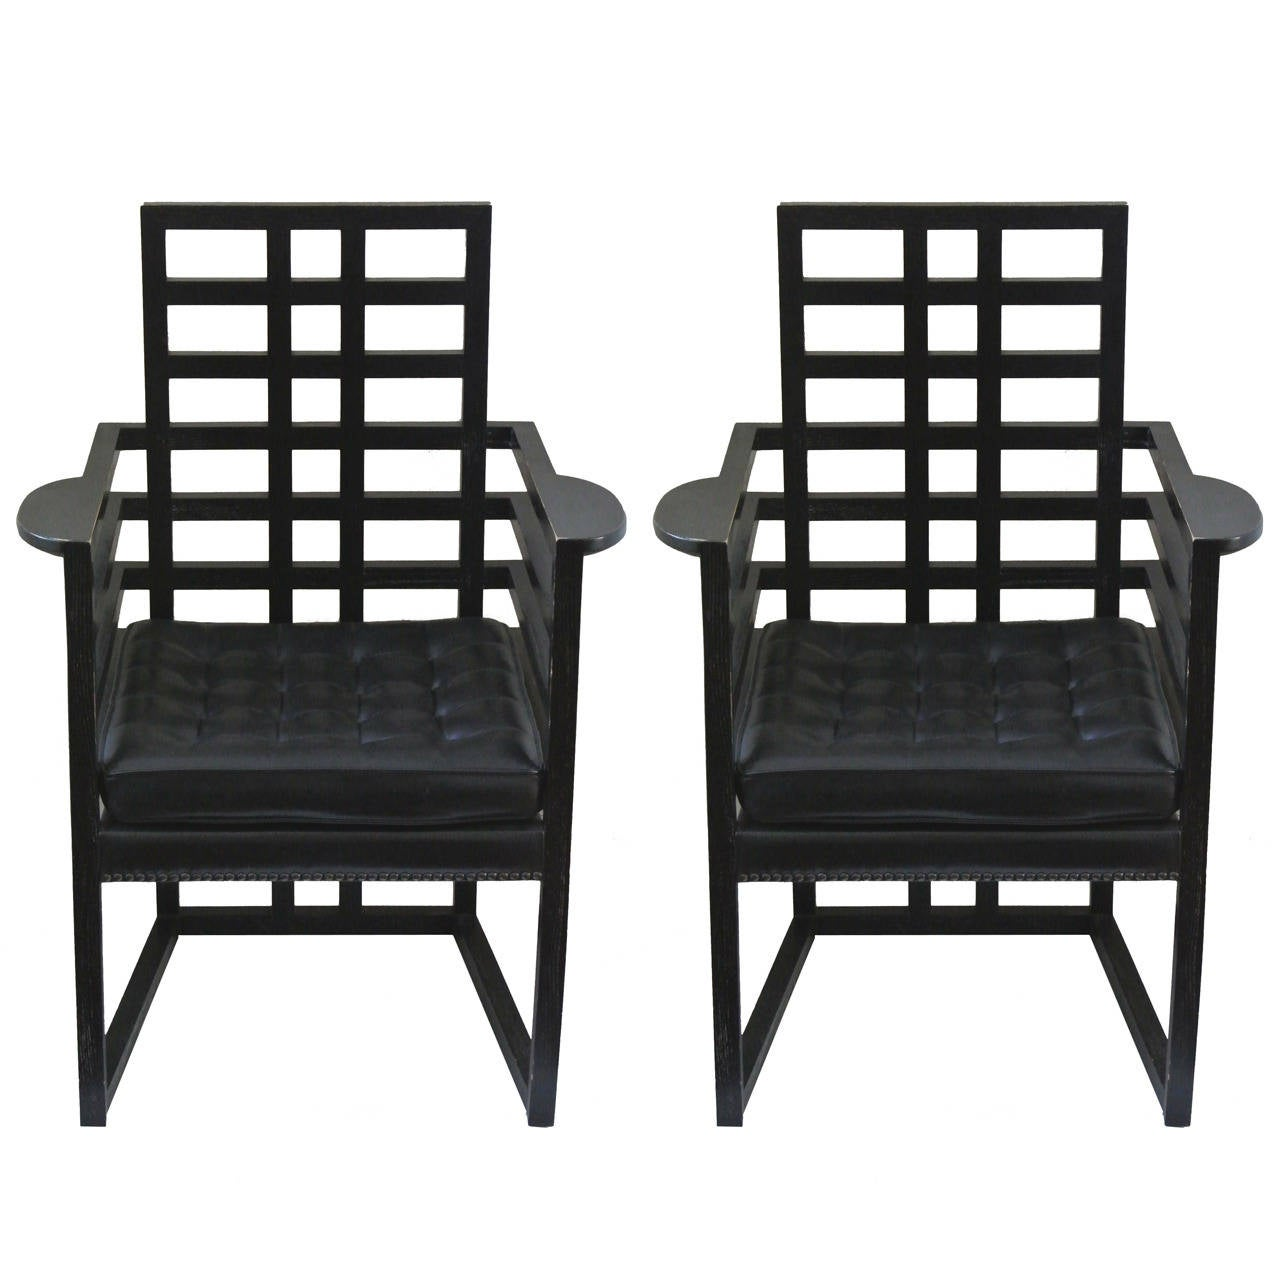 Pair Of Josef Hoffmann Quot Armloffel Quot Chairs Made By Wittmann